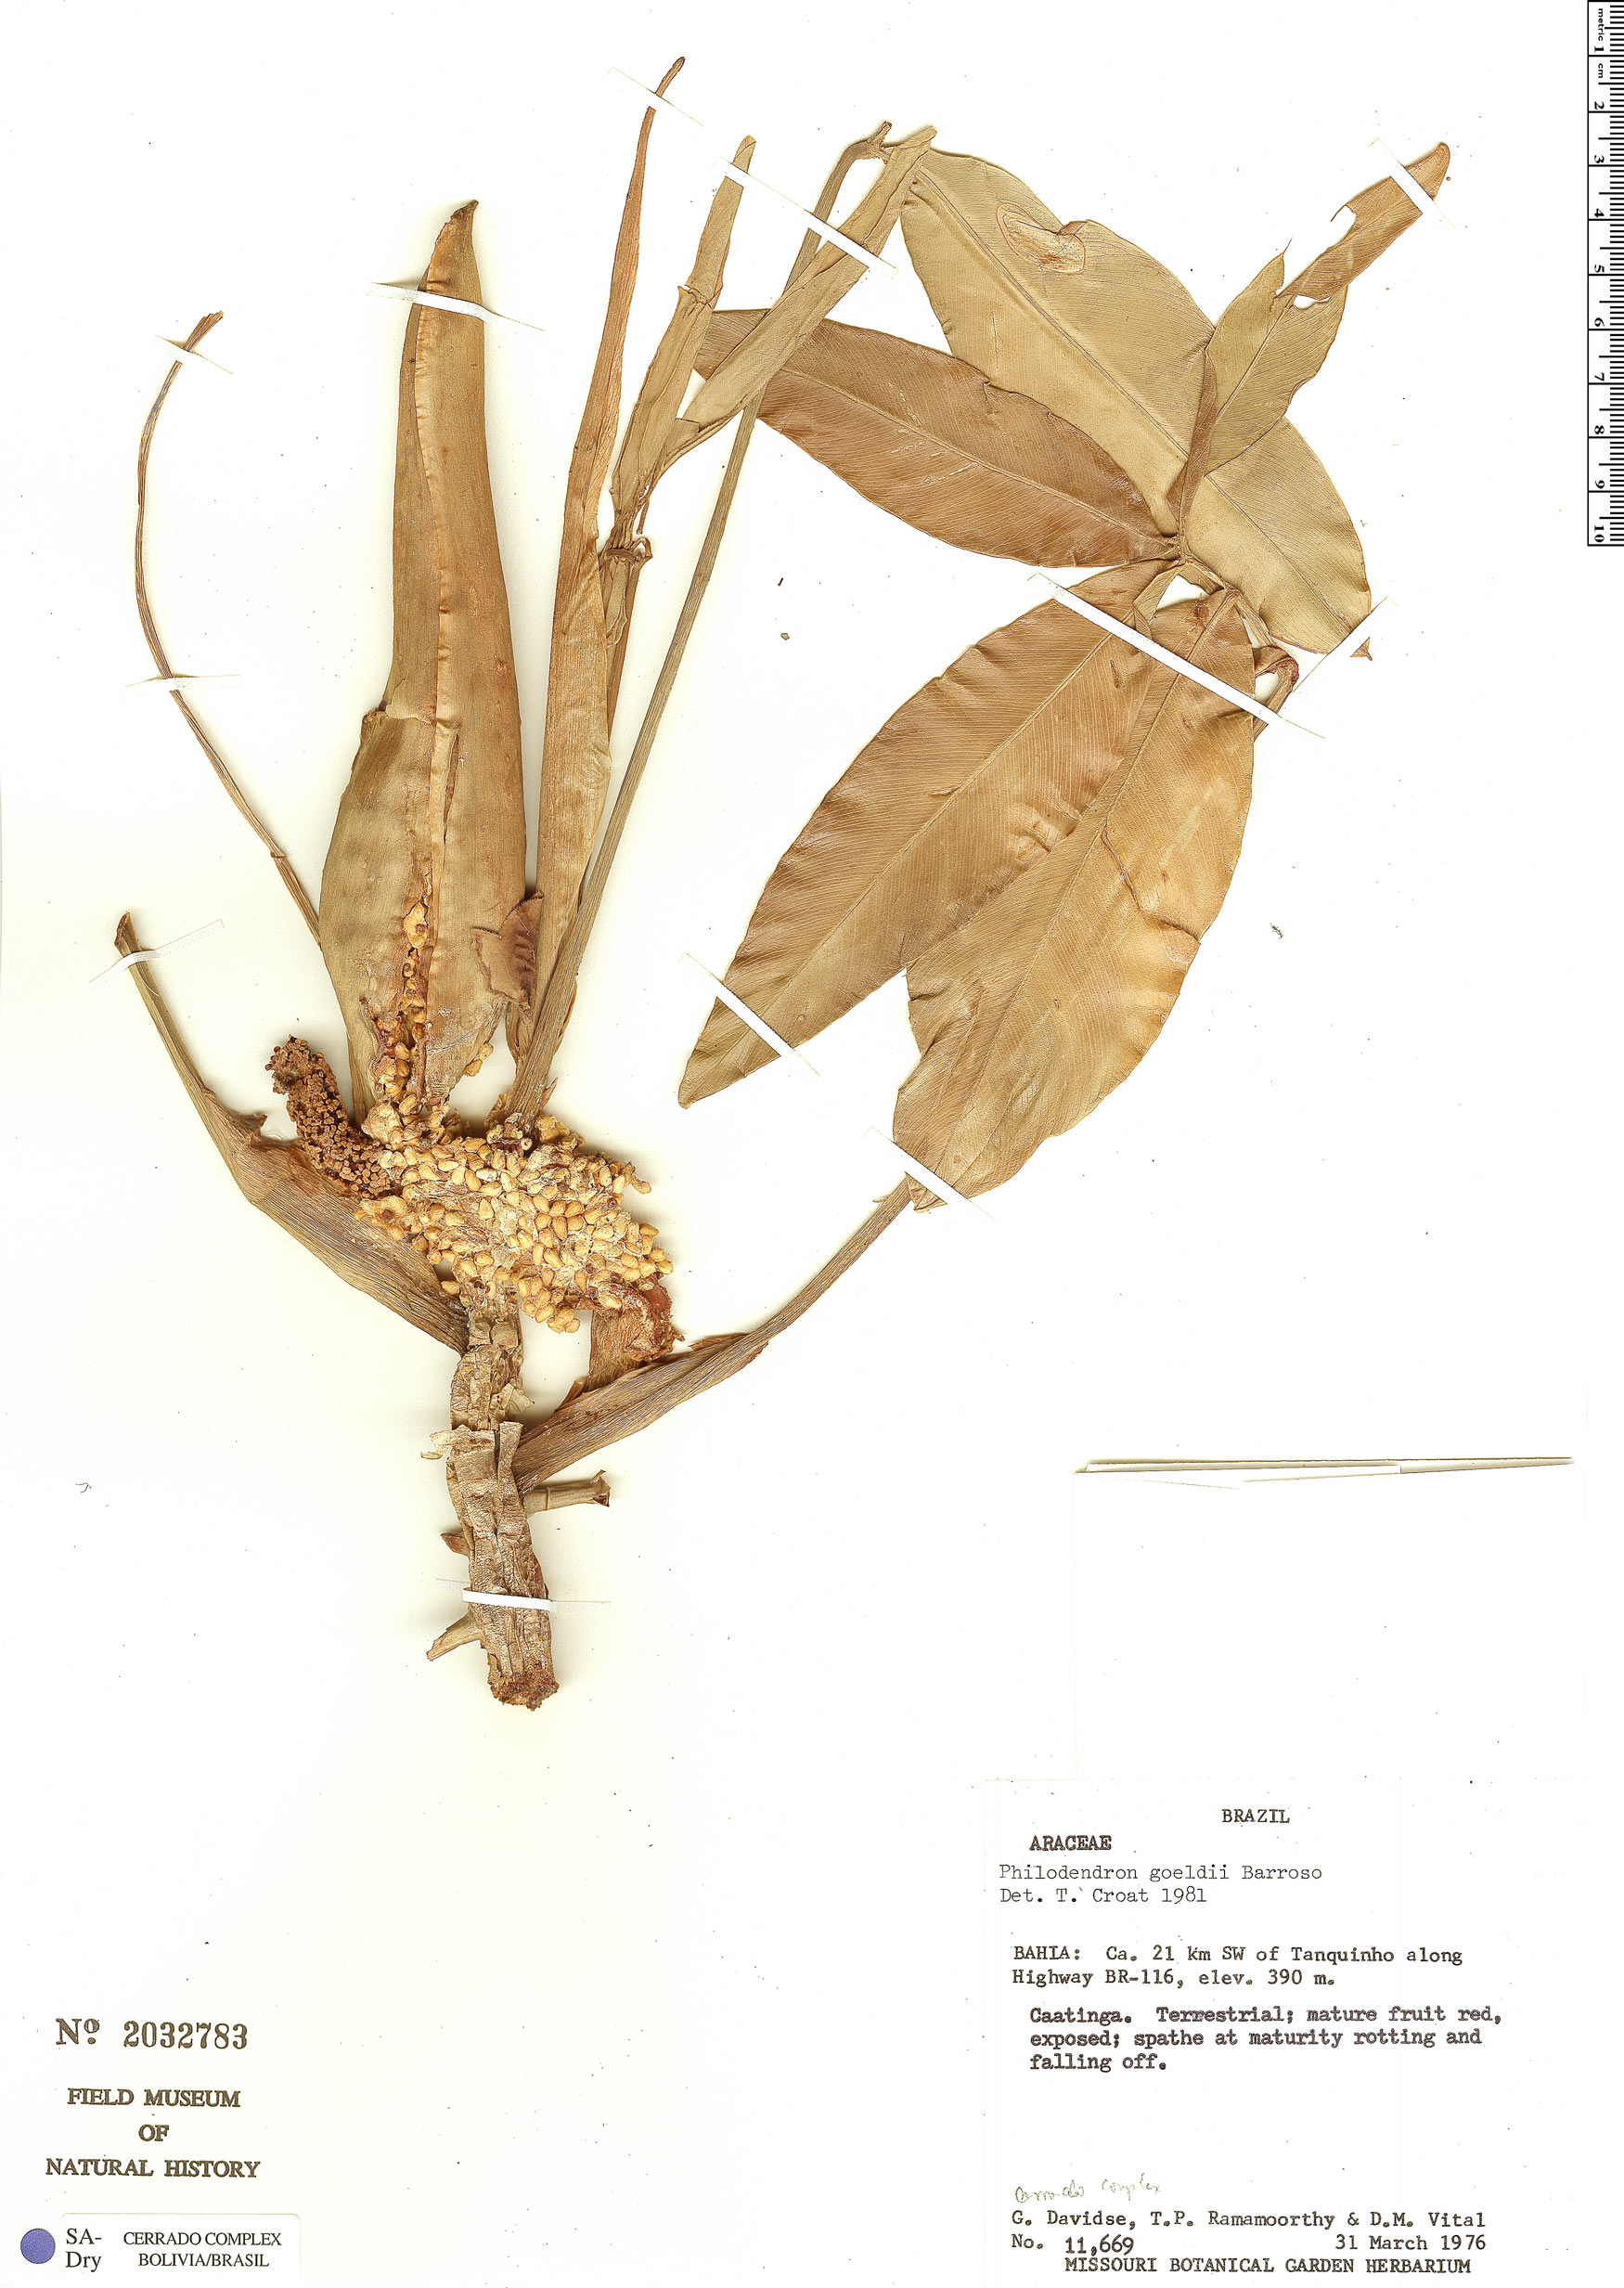 Specimen: Philodendron leal-costae